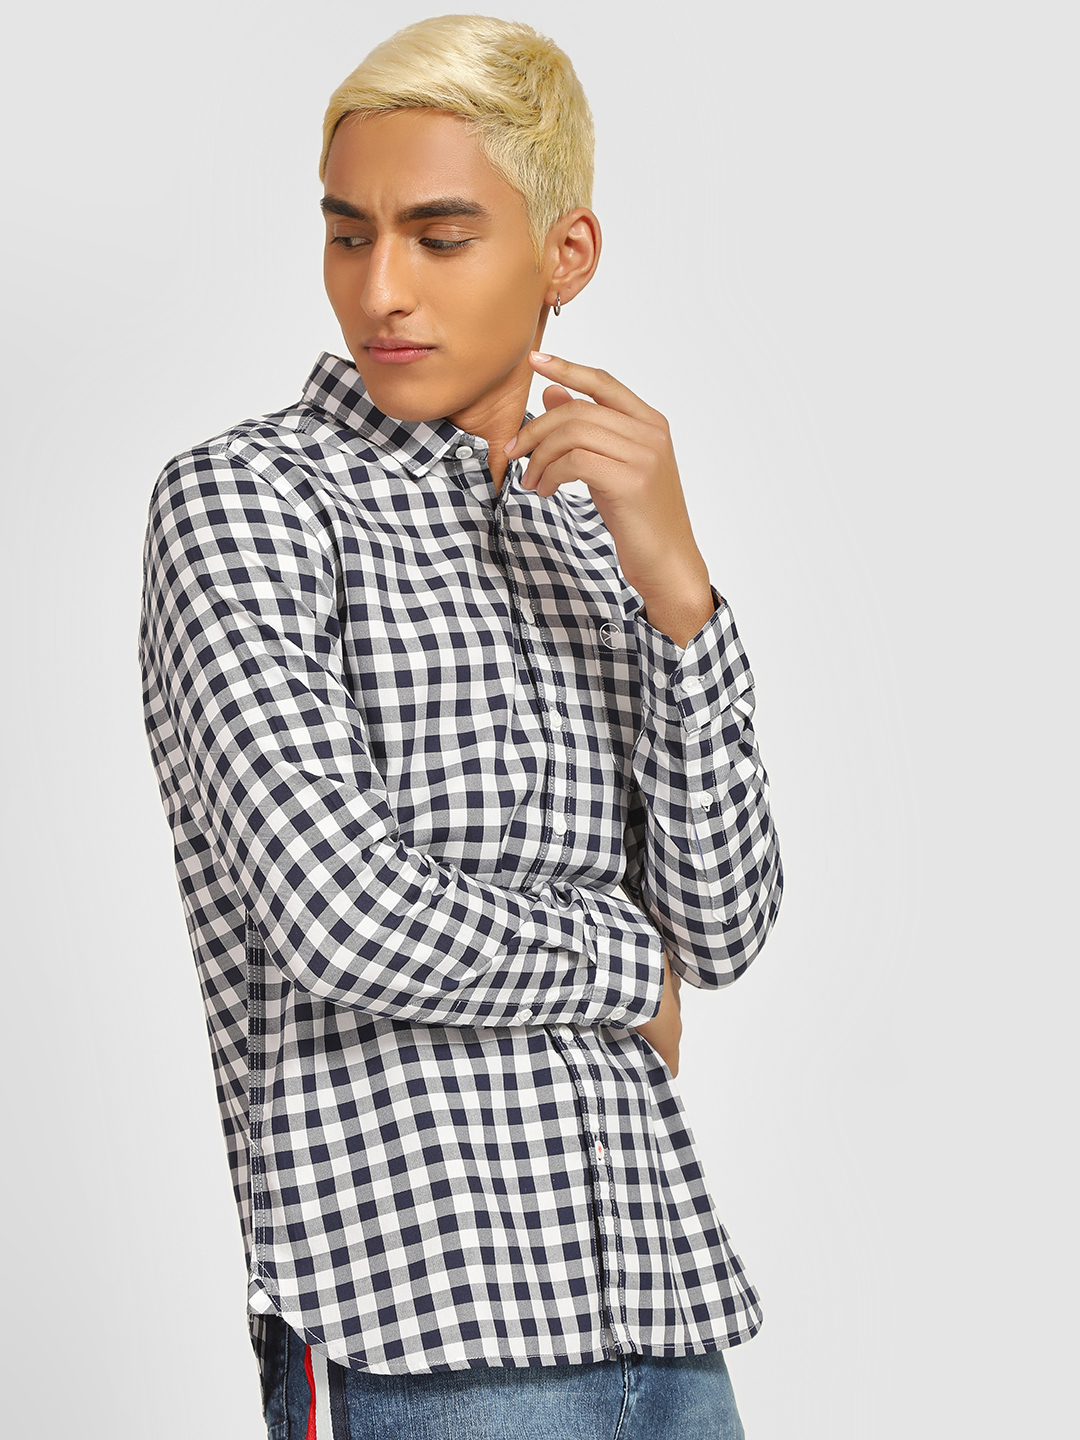 SCULLERS White Long Sleeve Gingham Check Shirt 1